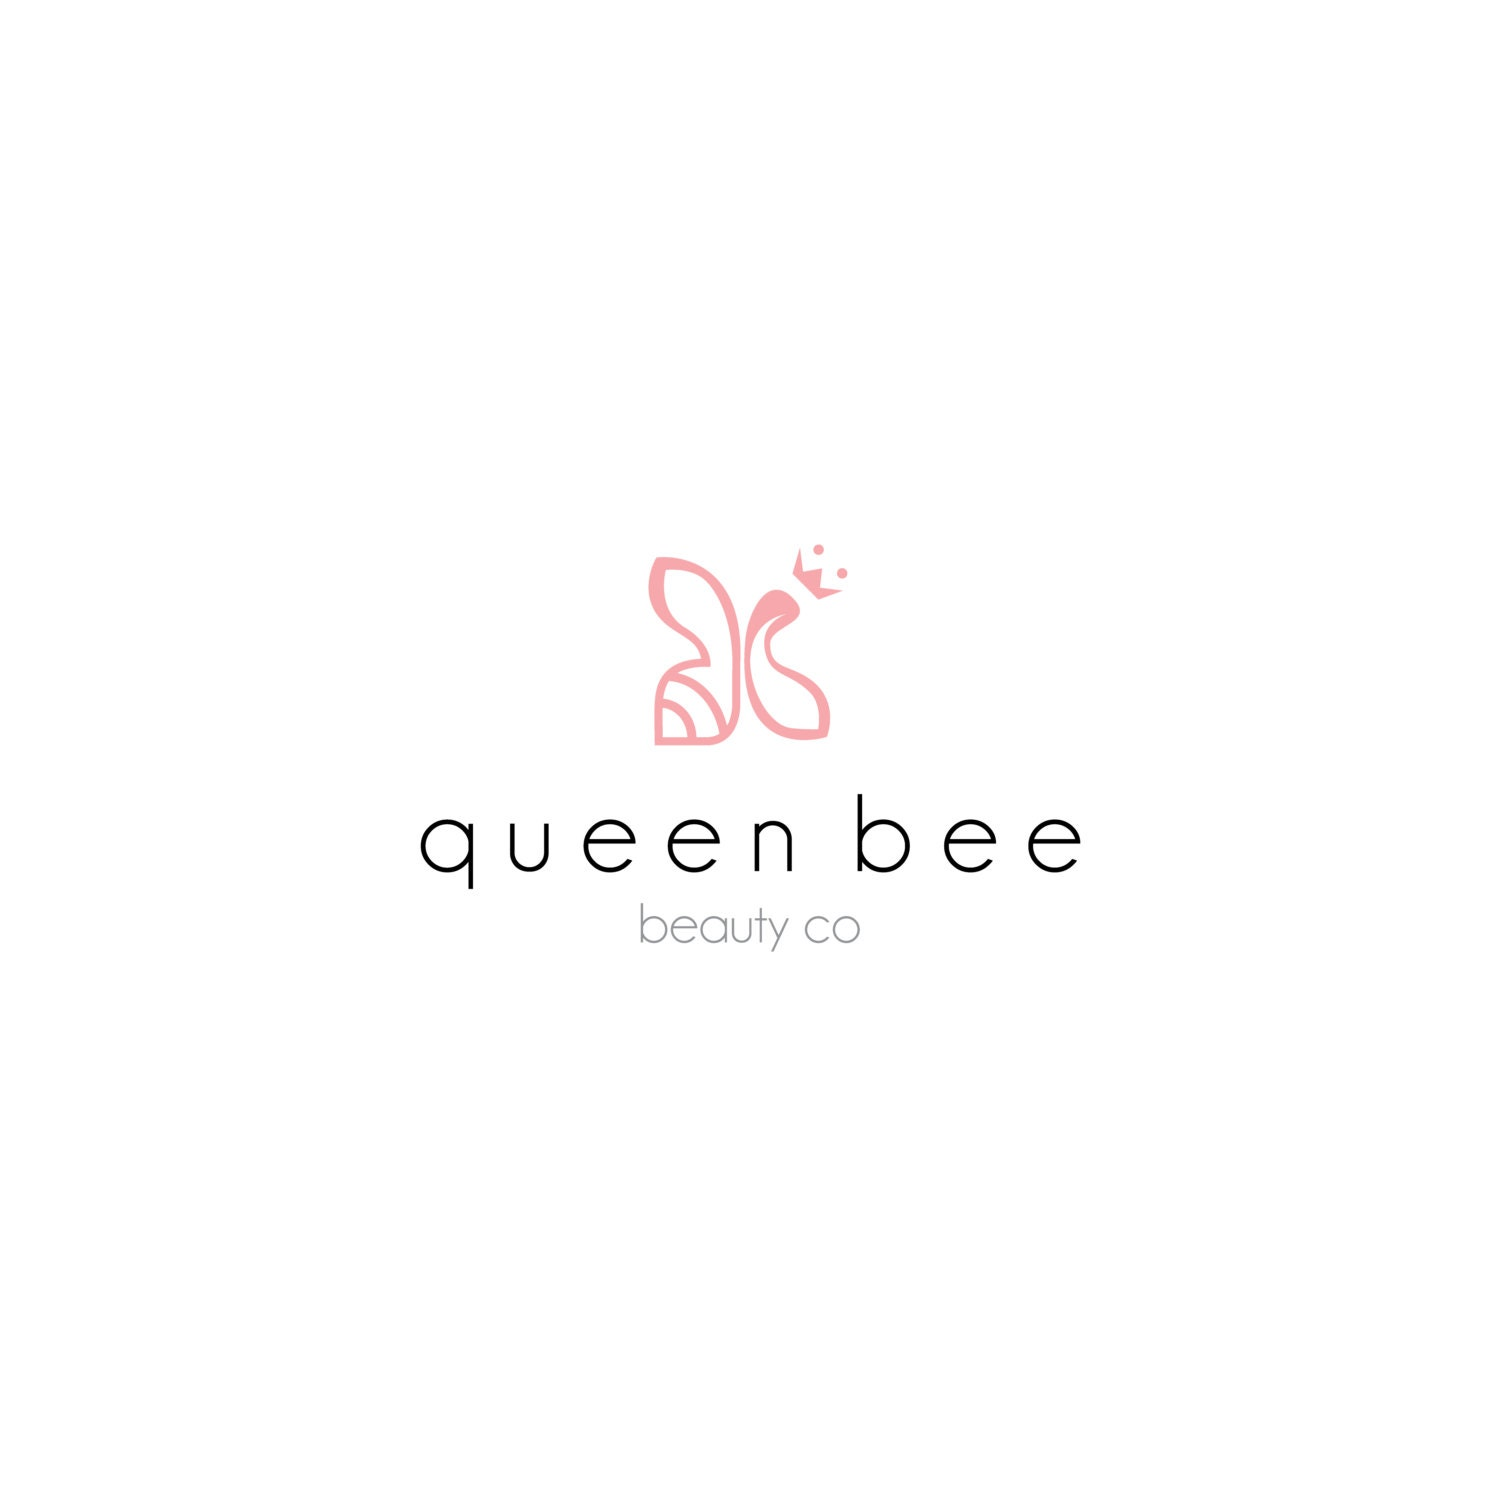 queen logo design - photo #45